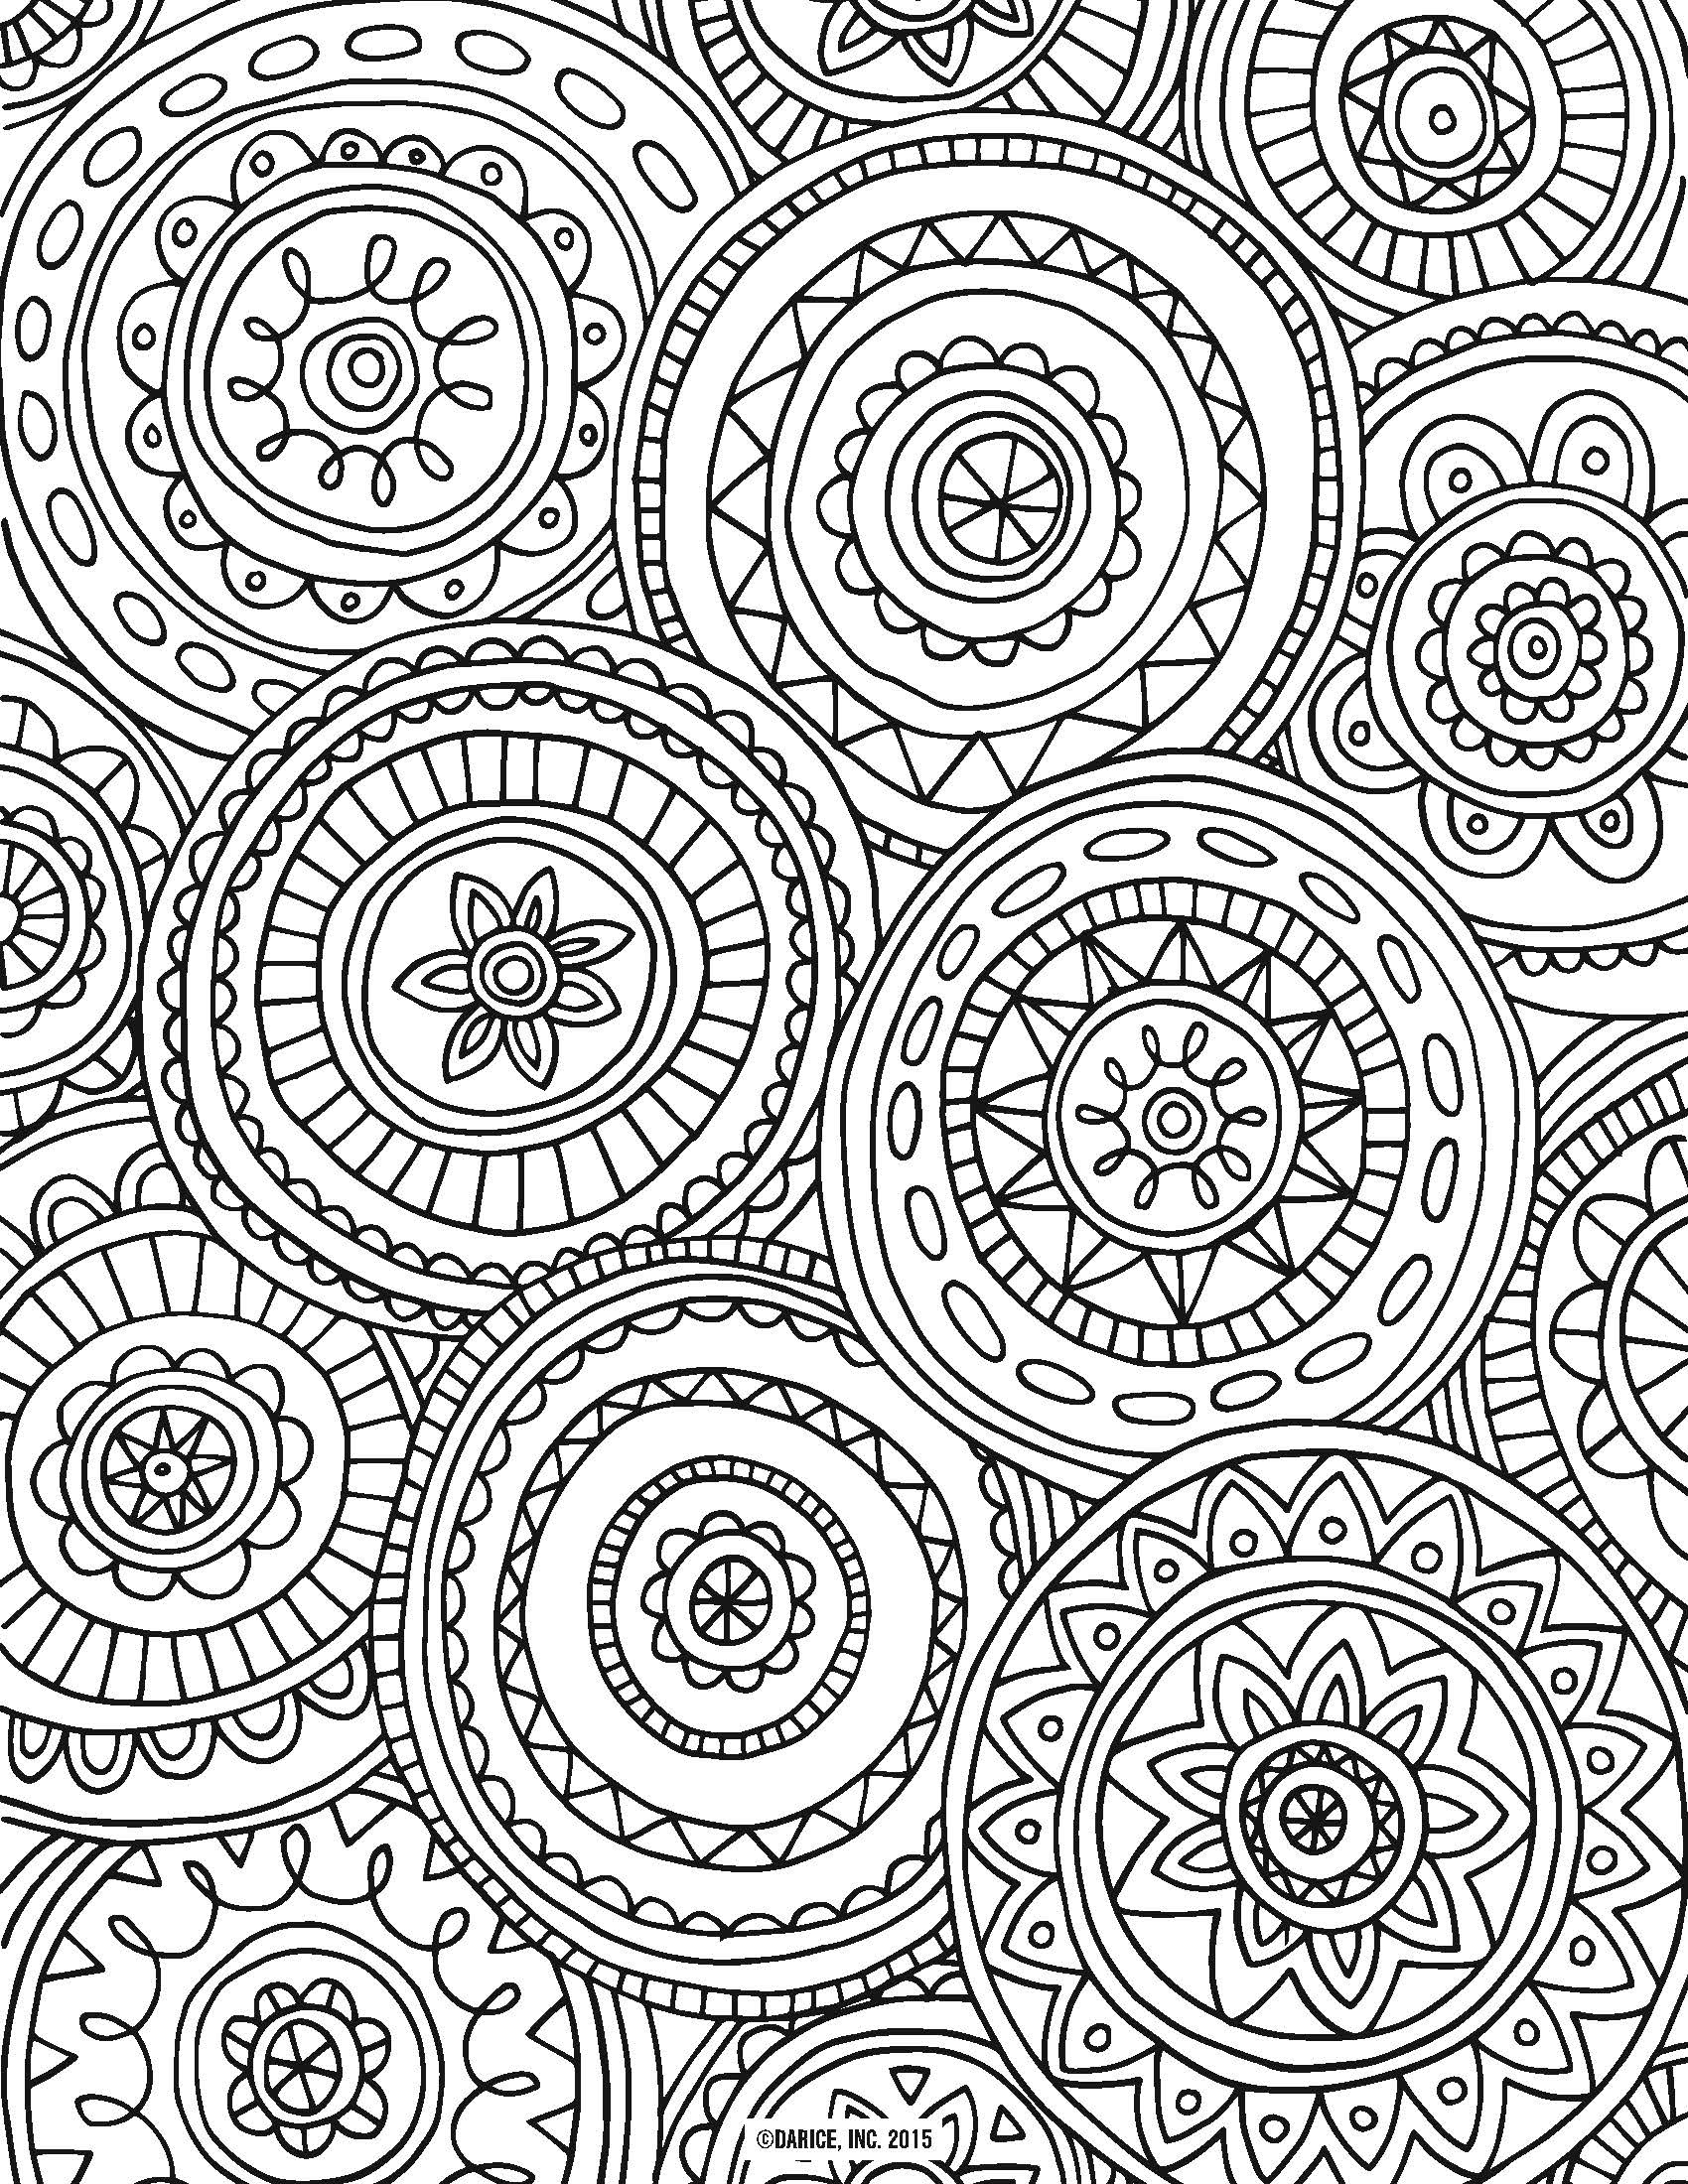 7800 Coloring Sheets Adults Printable Images & Pictures In HD